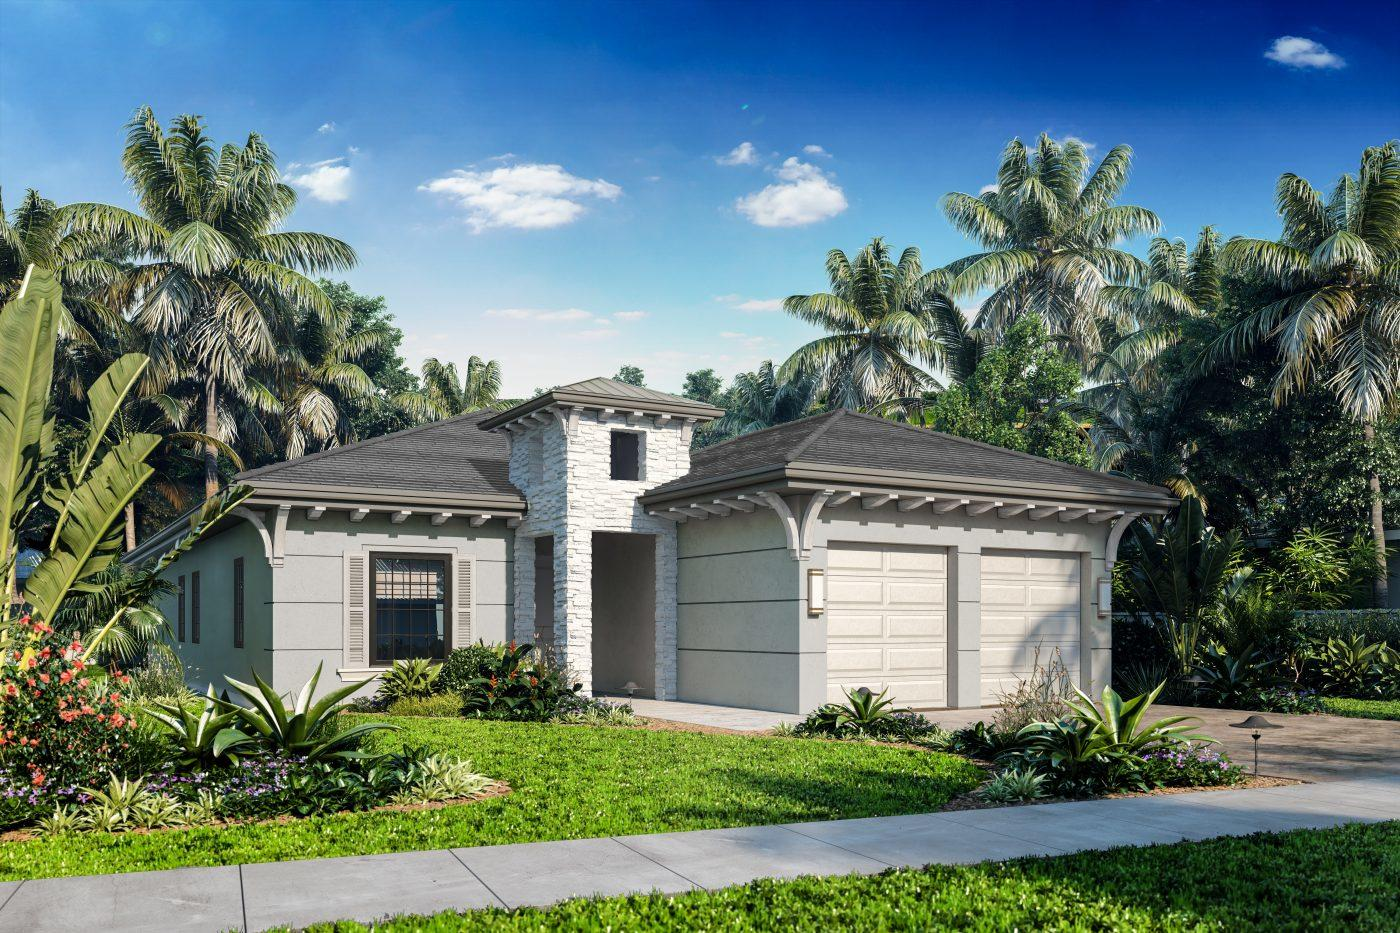 2858  Gin Berry Way  For Sale 10660173, FL